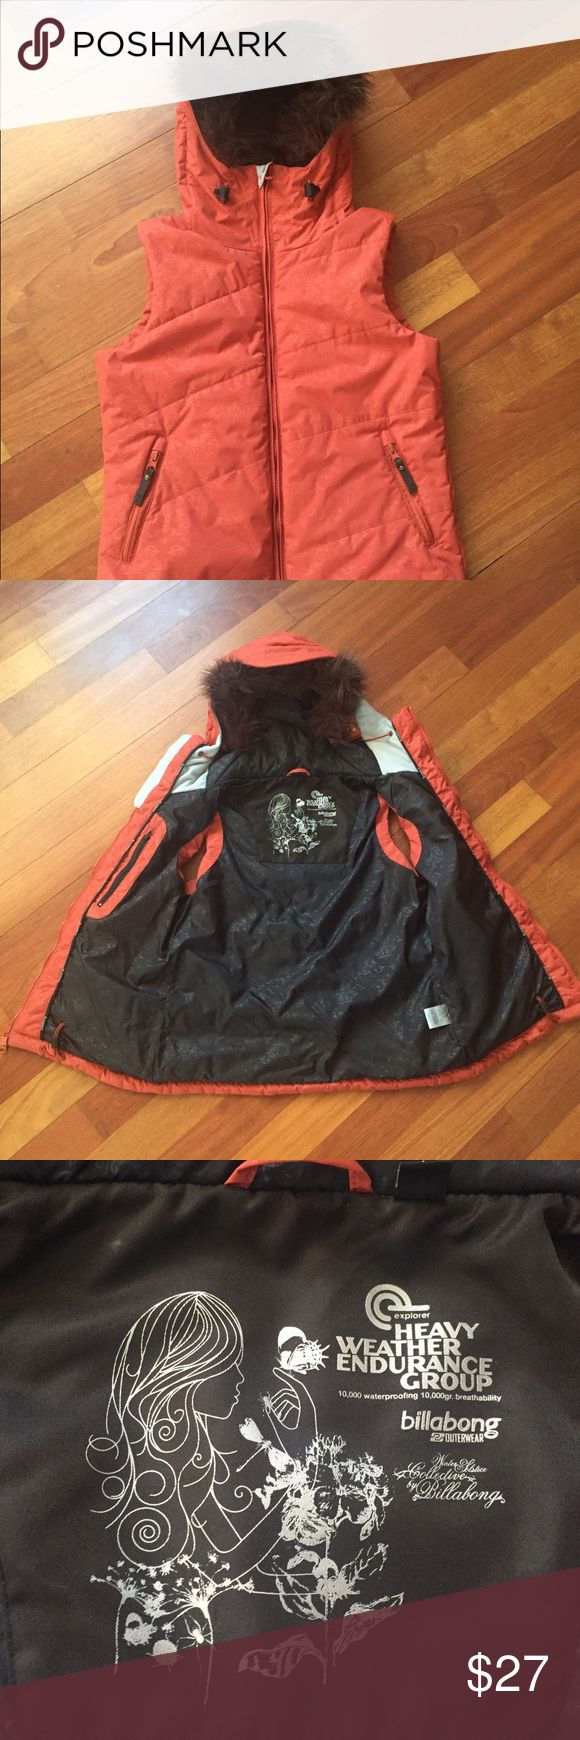 "Billabong Kitty vest - snowboarding, size M/L Like new orange Billabong Kitty vest from  ""Heavy Weather Endurance Group Winter Solstice Collection"". Waterproof. Hooded. Removable faux fur hood liner. Size L, fits more like a M. Never worn. Billabong Jackets & Coats Vests"